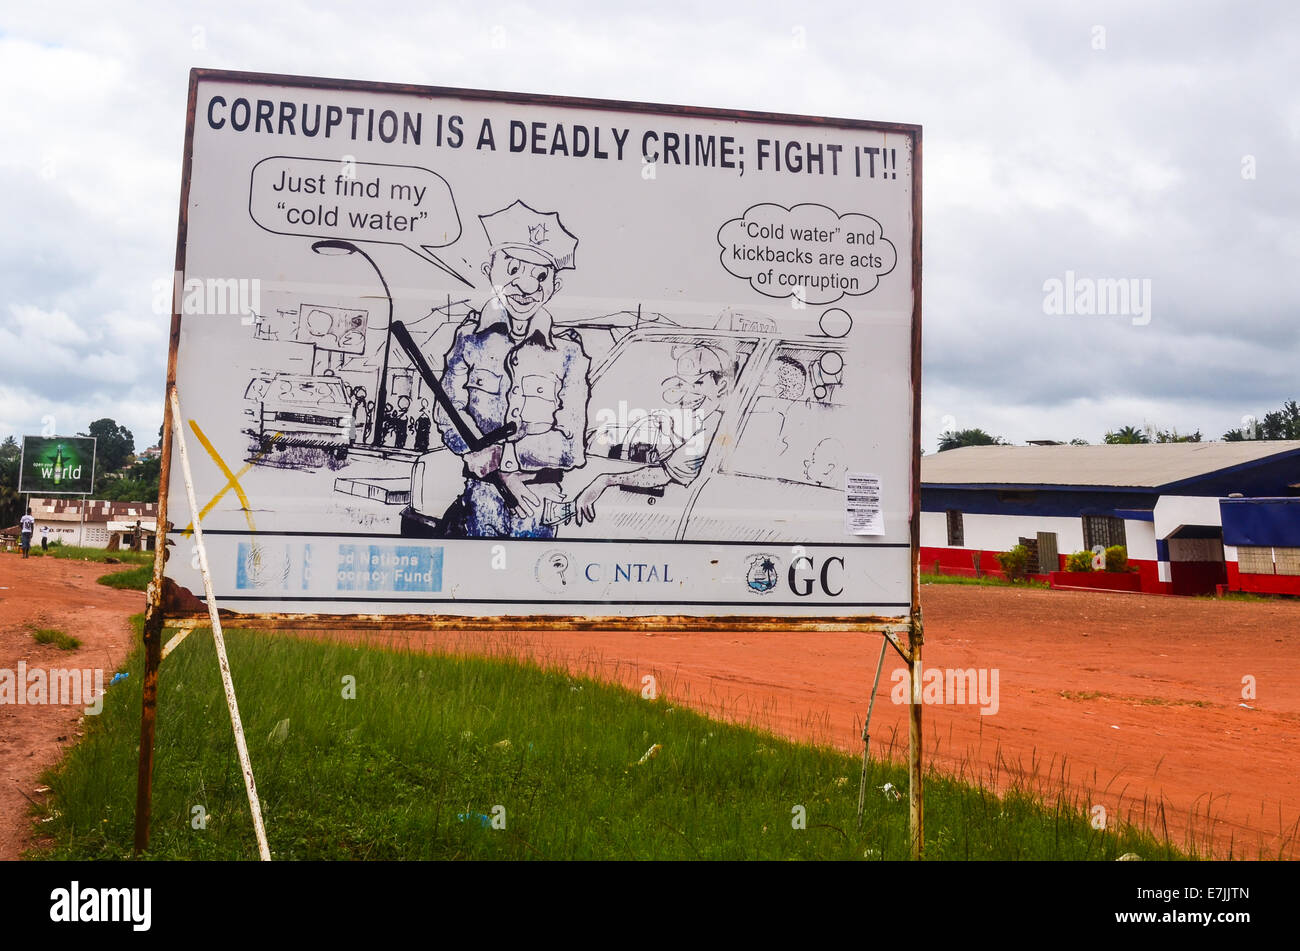 Road sign warning against corruption in Liberia, Africa - Stock Image